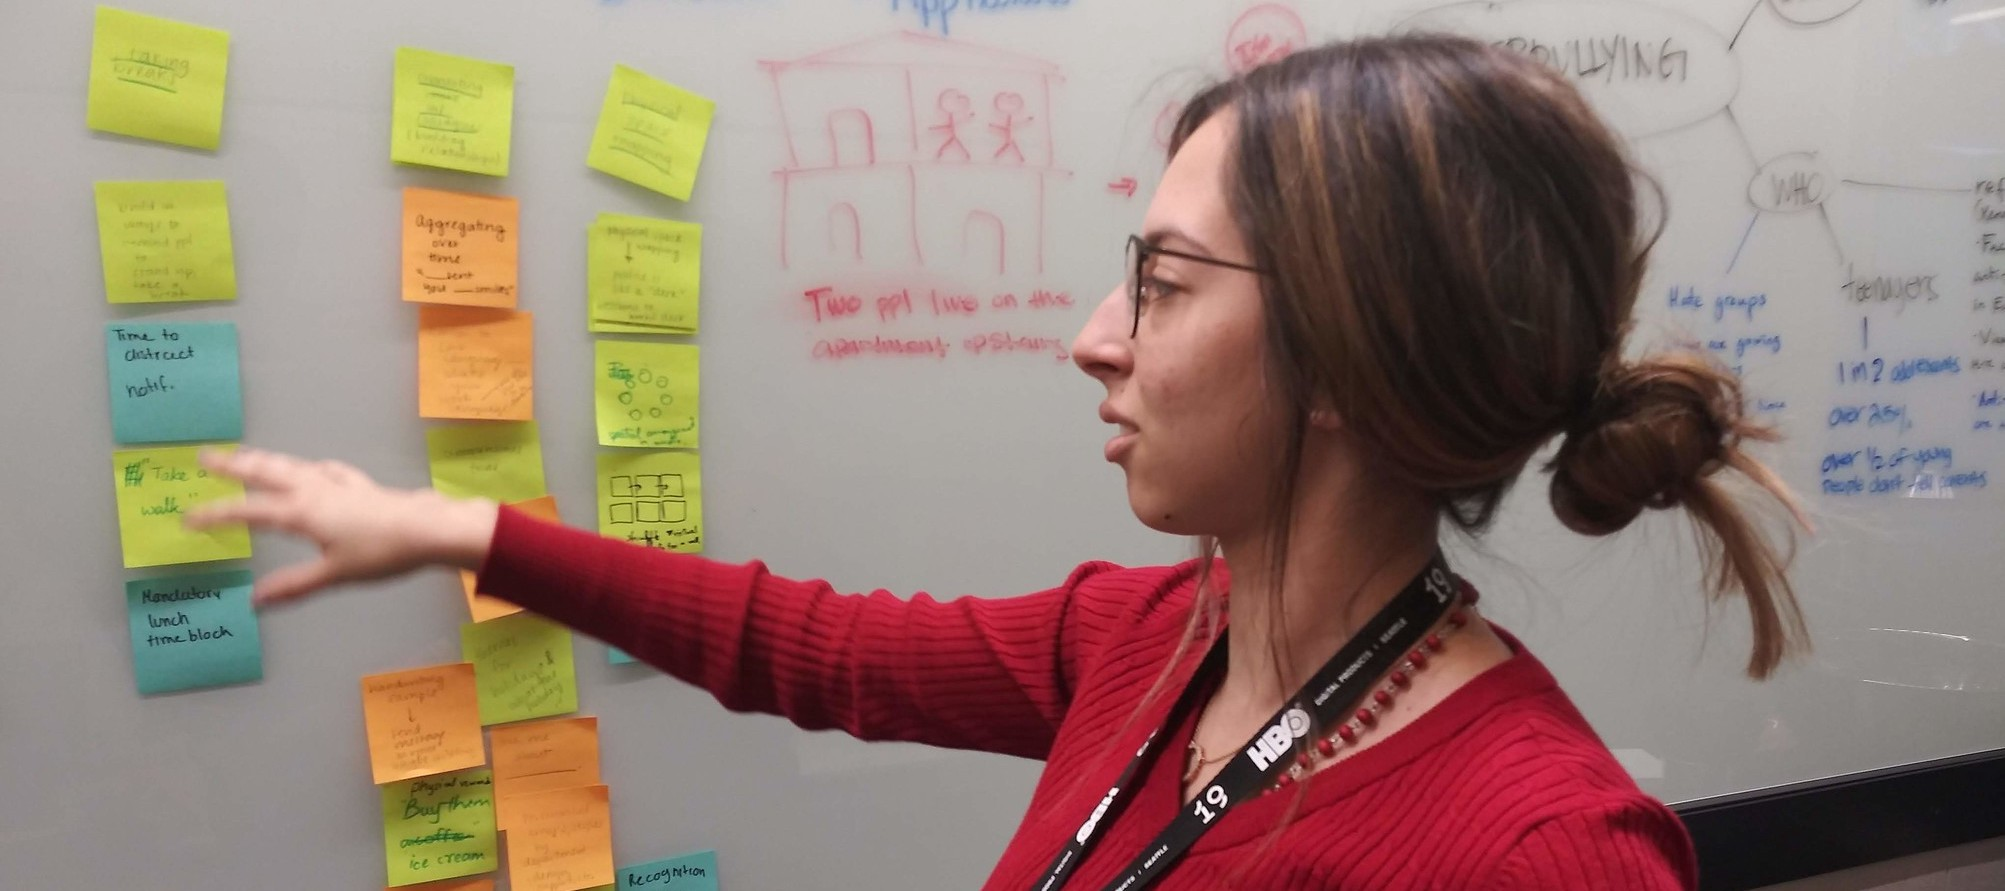 Woman with glasses in a red sweater pointing at Post-its on a whiteboard